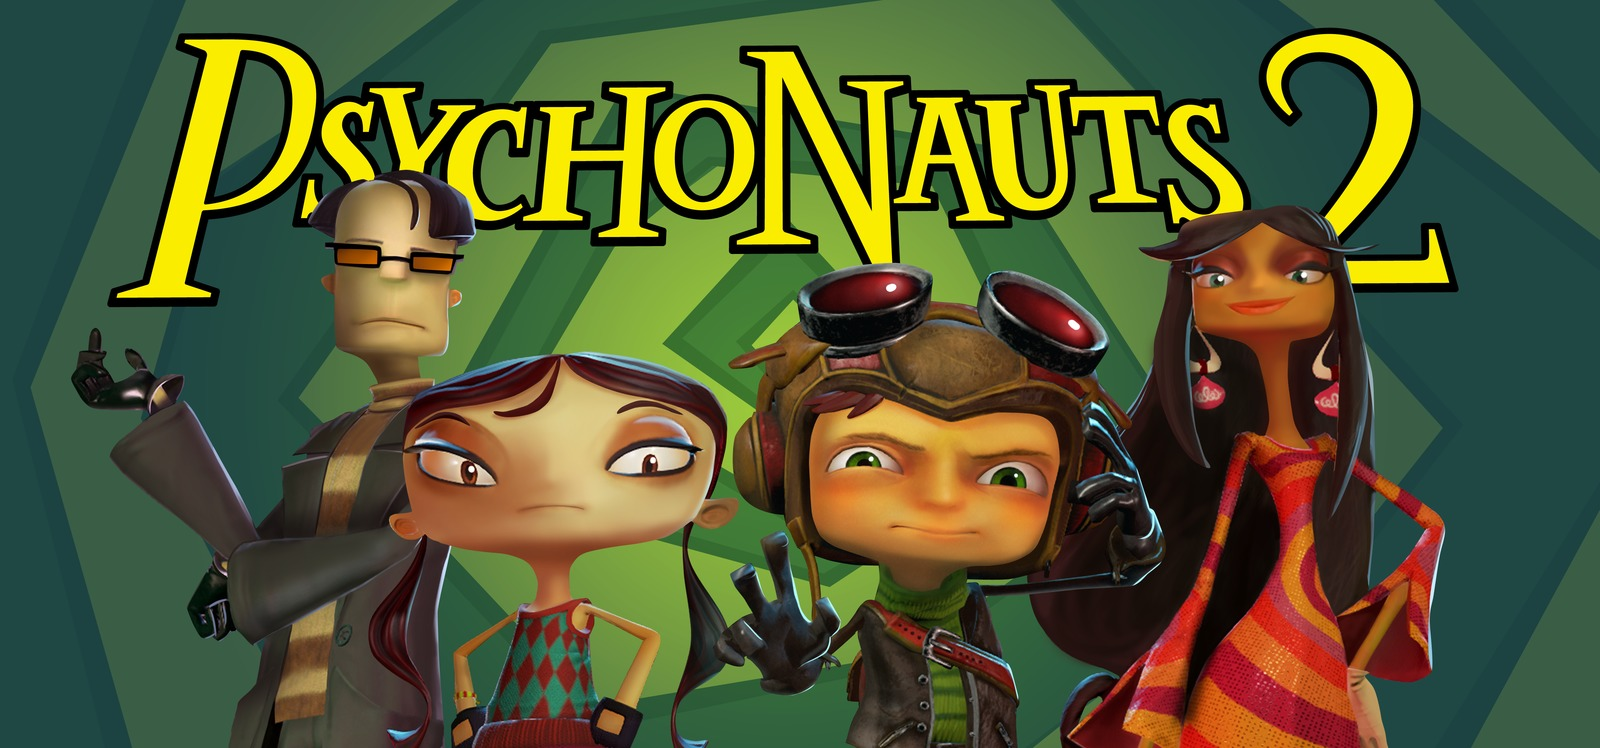 Tim Schafer images Psychonauts 2 Banner HD wallpaper and 1600x748